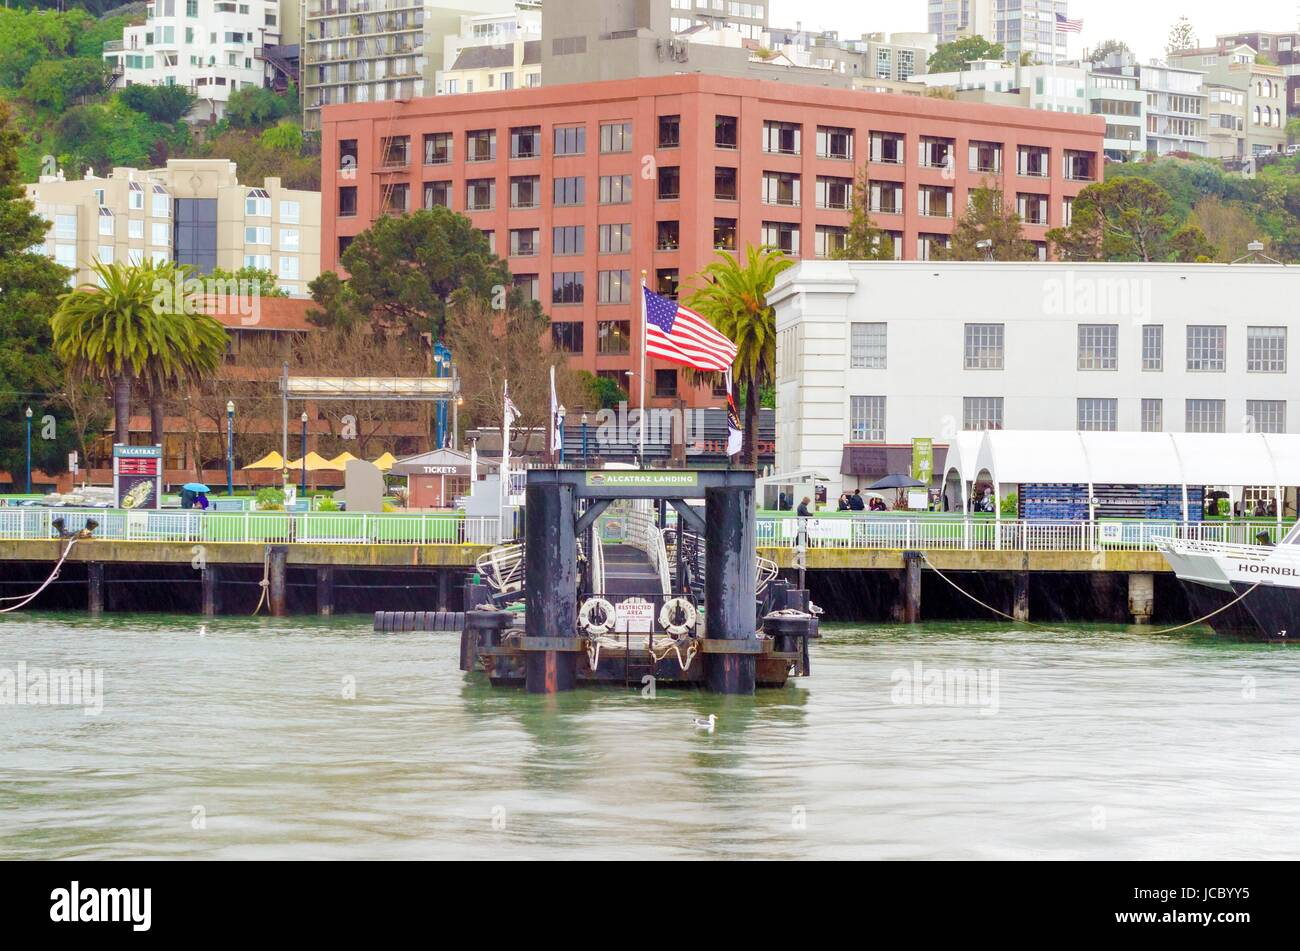 Pier 33 on The Embarcadero at Fisherman's wharf in San Francisco, California, Uniter States. The pier where - Stock Image